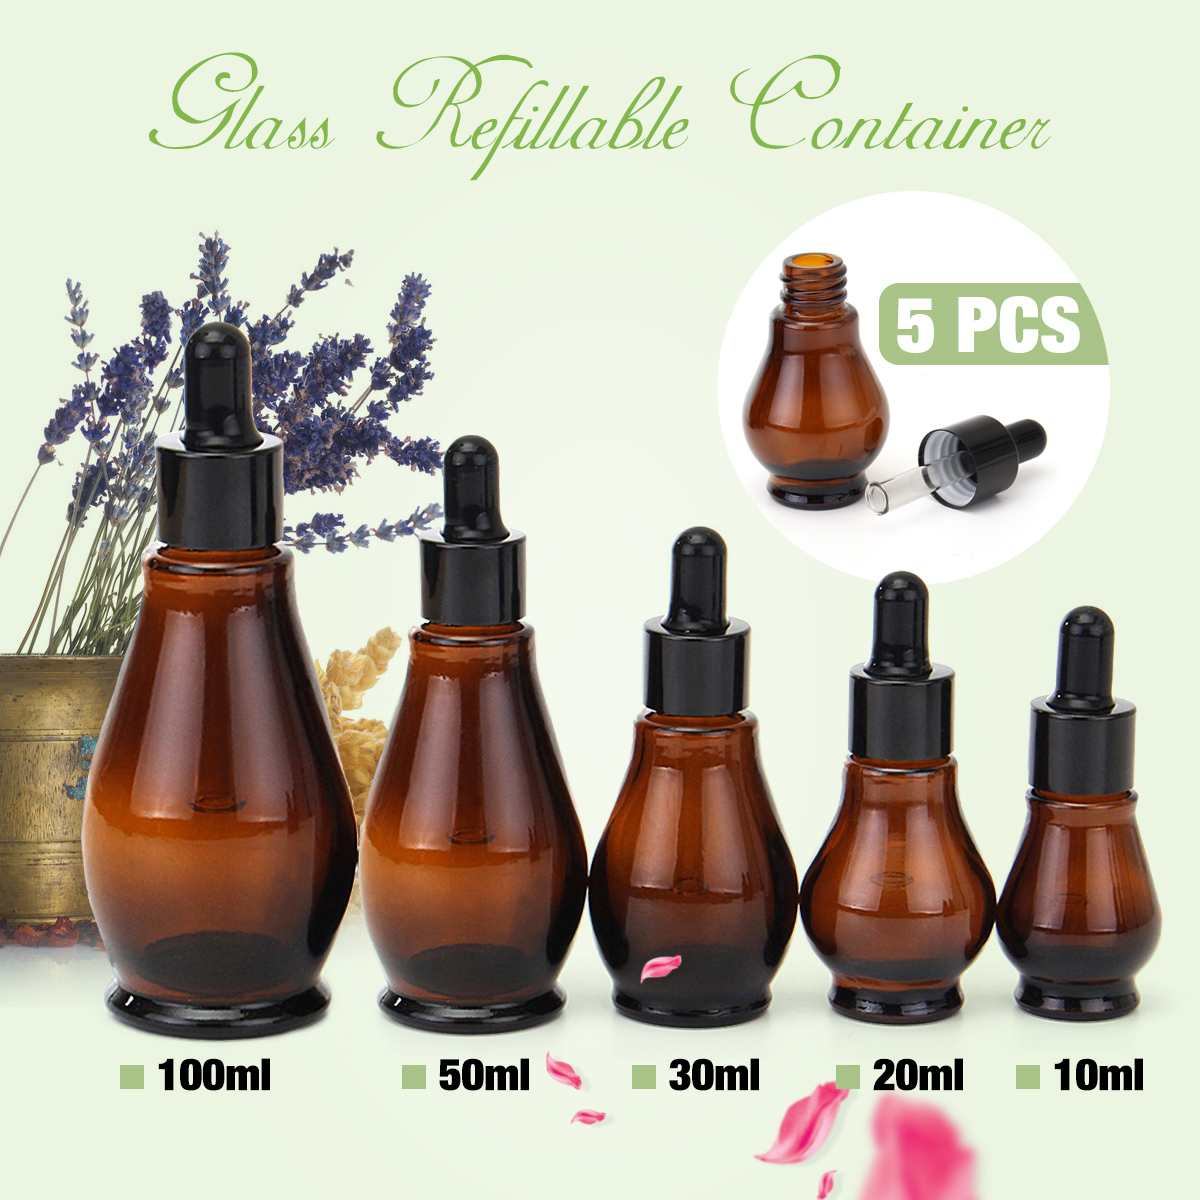 5pcs Amber Glass Makeup Dropper Bottle 100ml Essential Oil Perfume Pipette Bottles Refillable Empty Container 10/20/30/50/100ml5pcs Amber Glass Makeup Dropper Bottle 100ml Essential Oil Perfume Pipette Bottles Refillable Empty Container 10/20/30/50/100ml